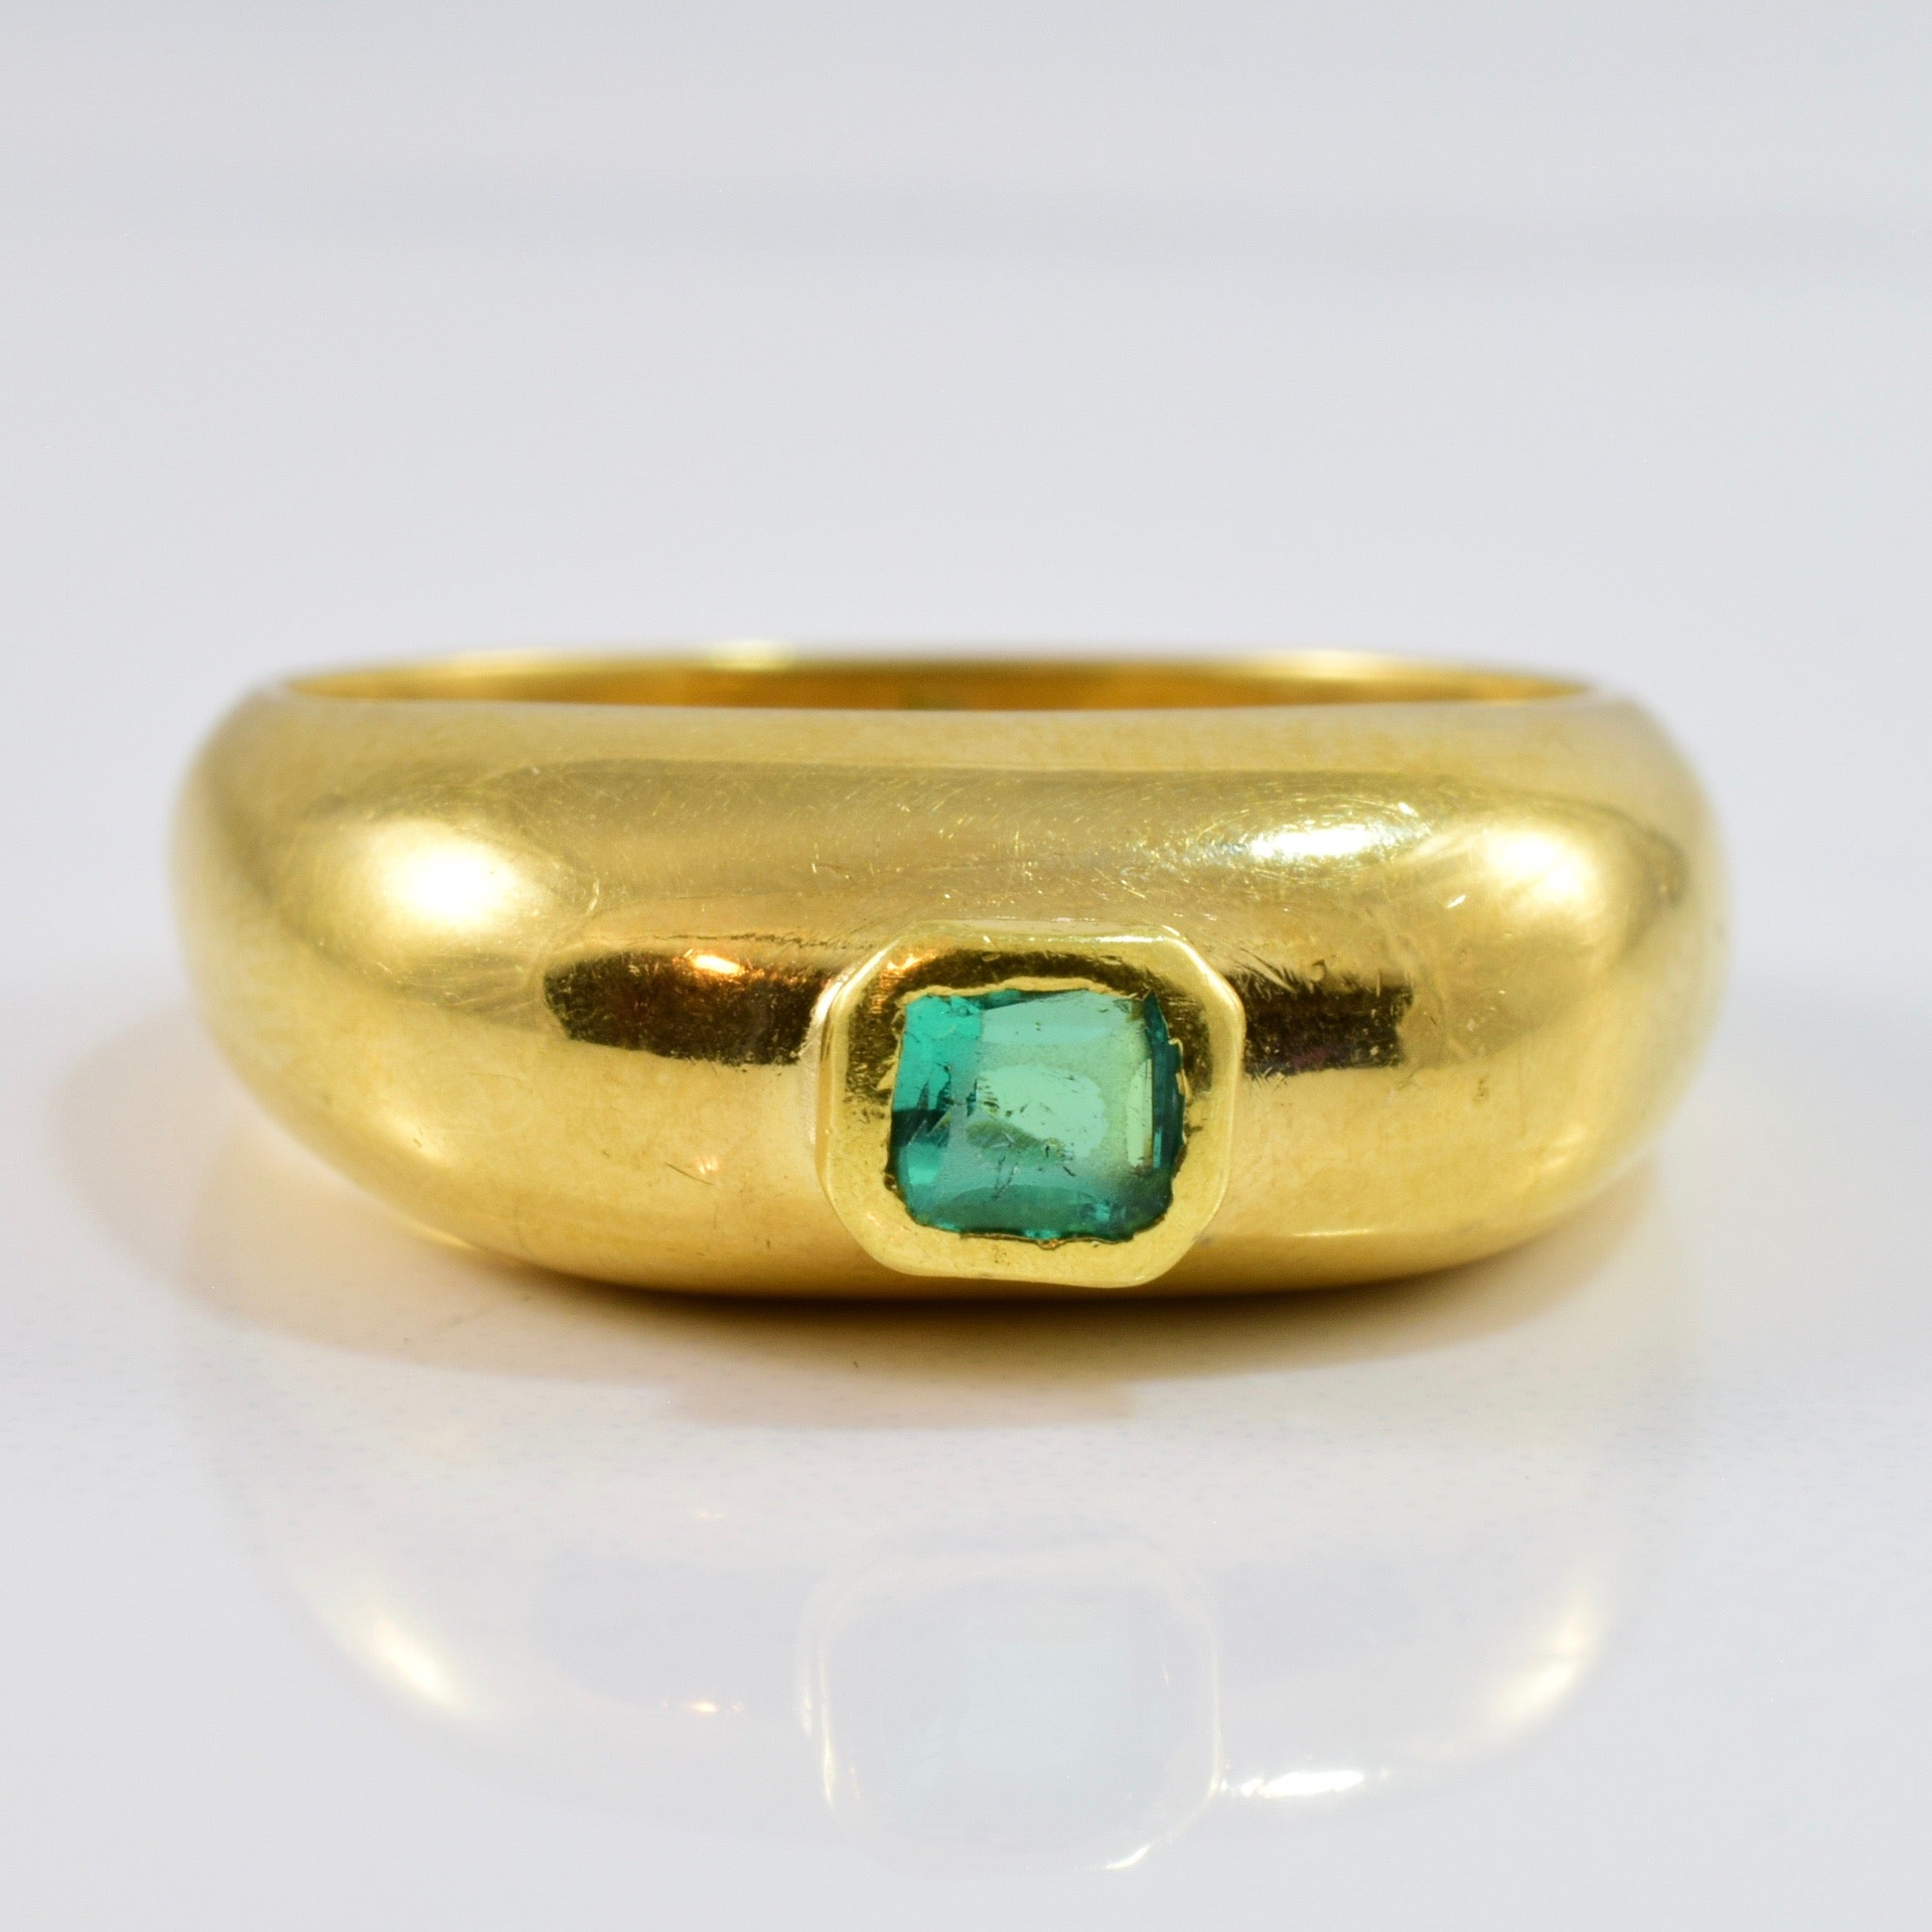 Bezel Set Emerald Ring | SZ 6.5 |